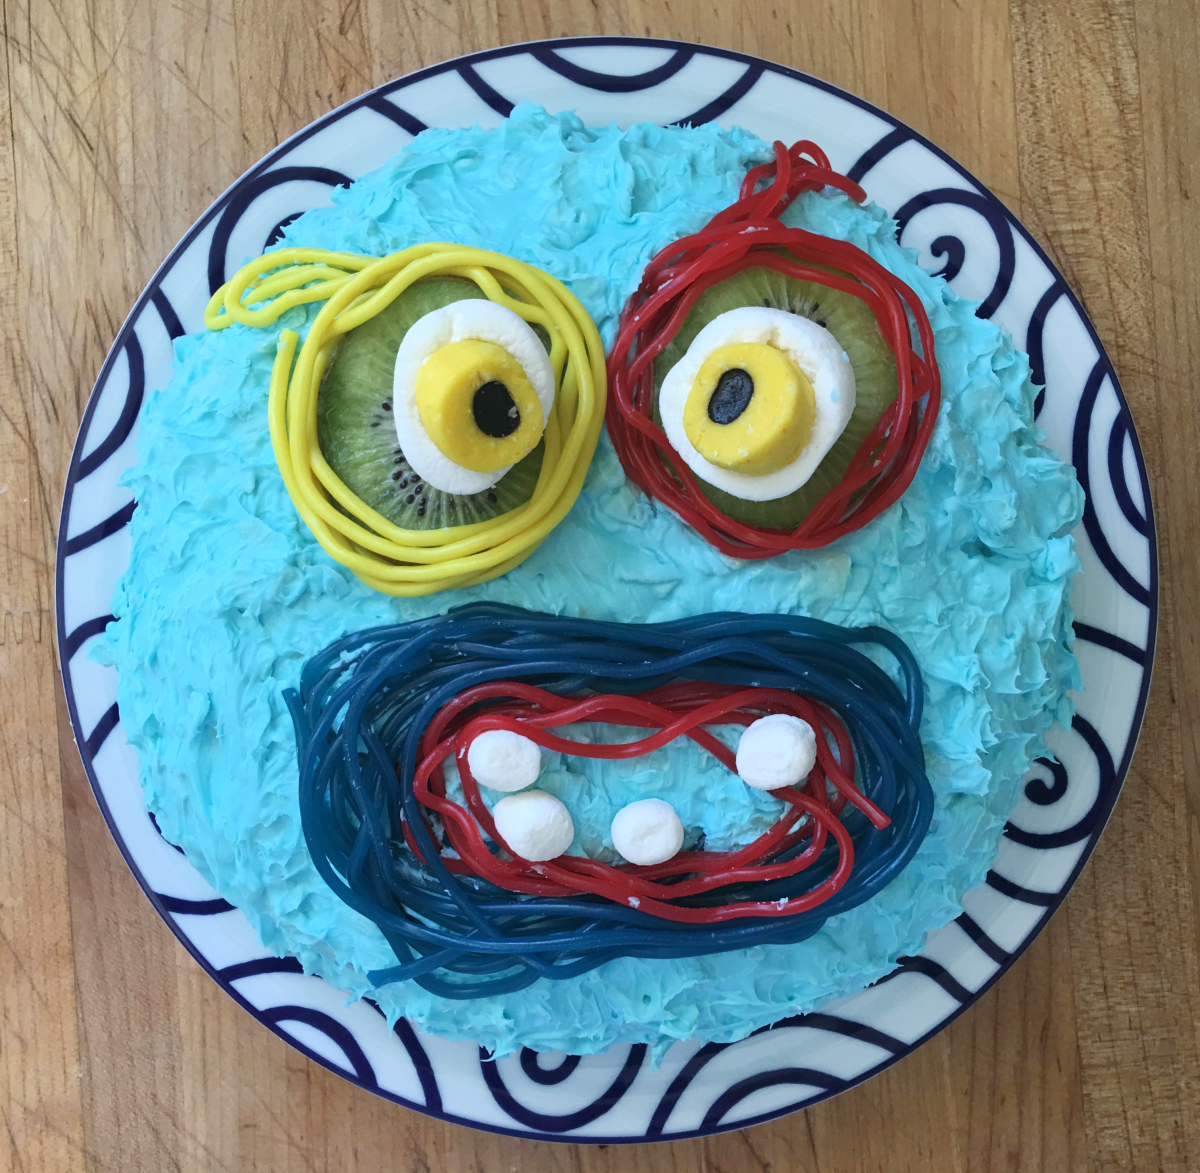 The Finished Monster Cake!